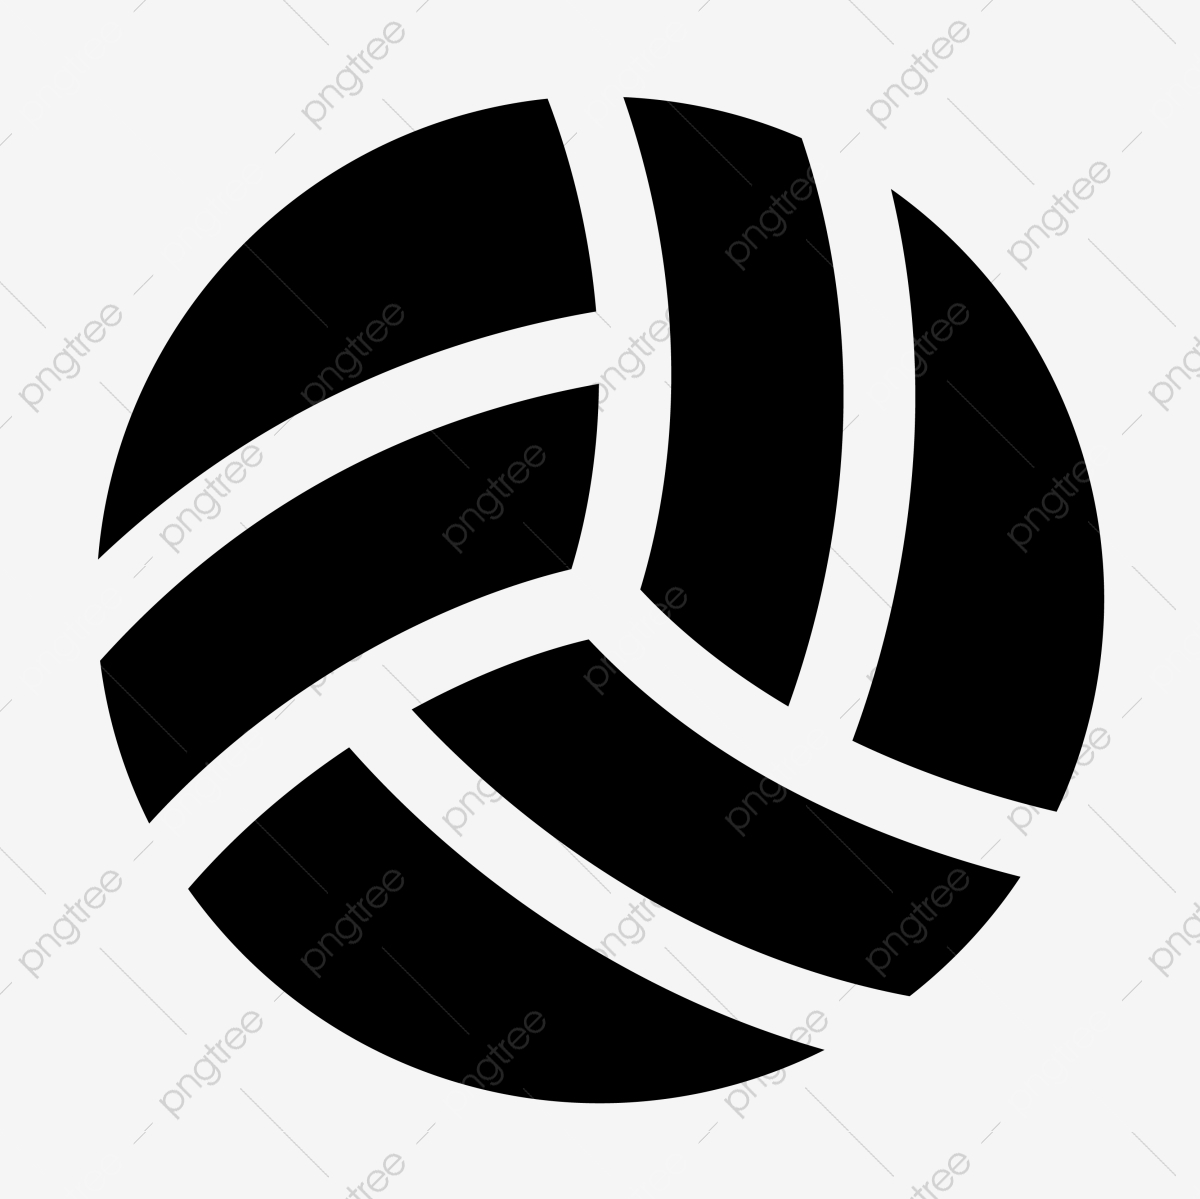 Volleyball Ball Glyph Icon Vector Ball Icons Volleyball Icons Volleyball Png And Vector With Transparent Background For Free Download